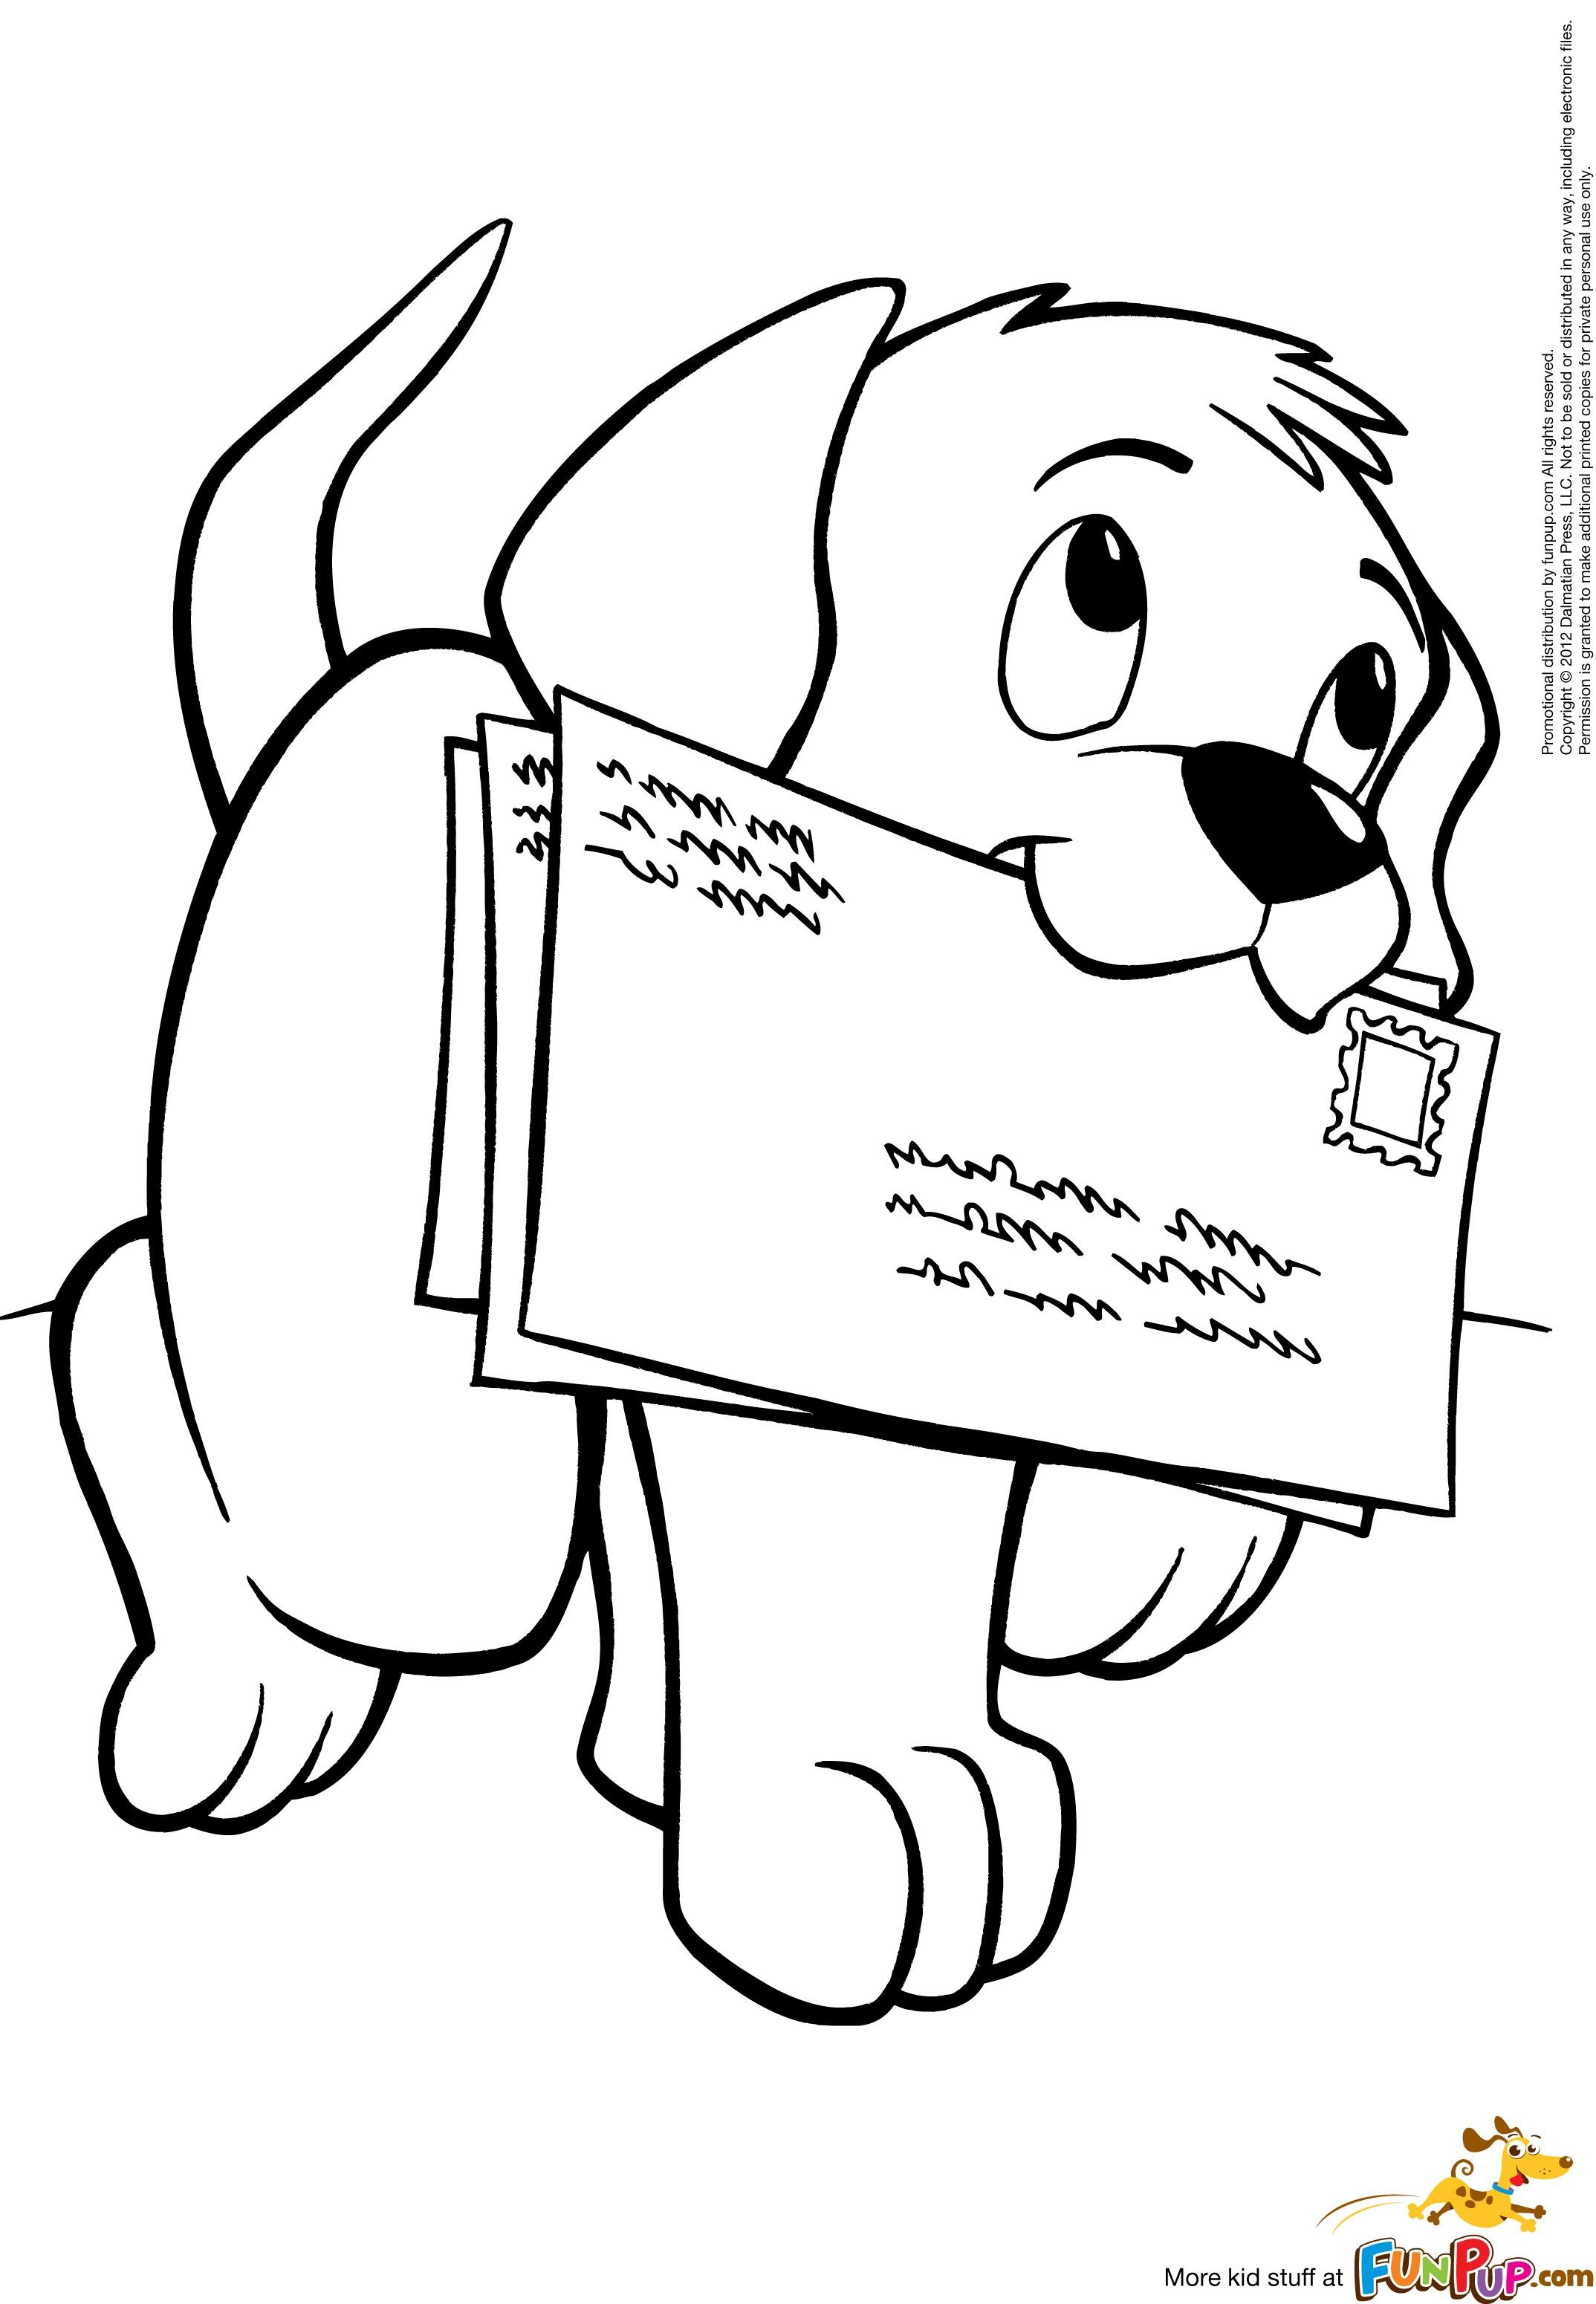 animal coloring pages for kids dogs jokes | Free Printable Coloring Pages | Puppy coloring pages, Dog ...